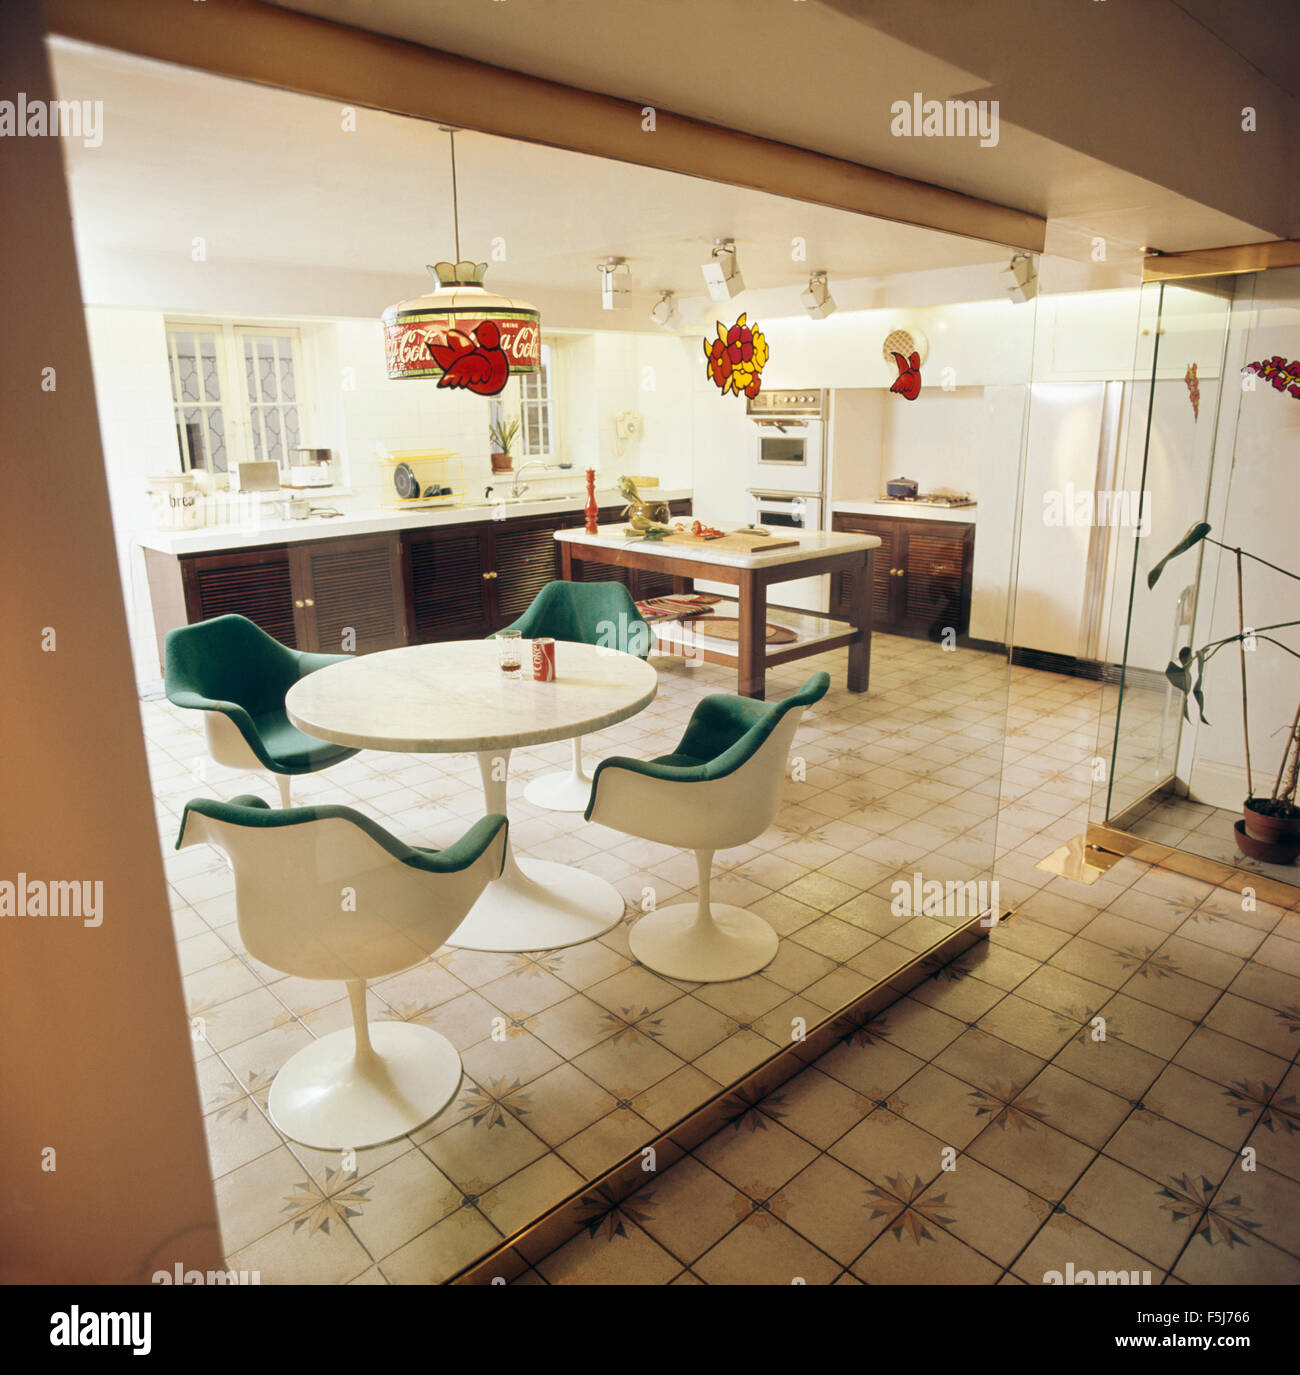 Eero Saarinen Tulip Table And Chairs In Seventies Kitchen With Glass Wall  Divider